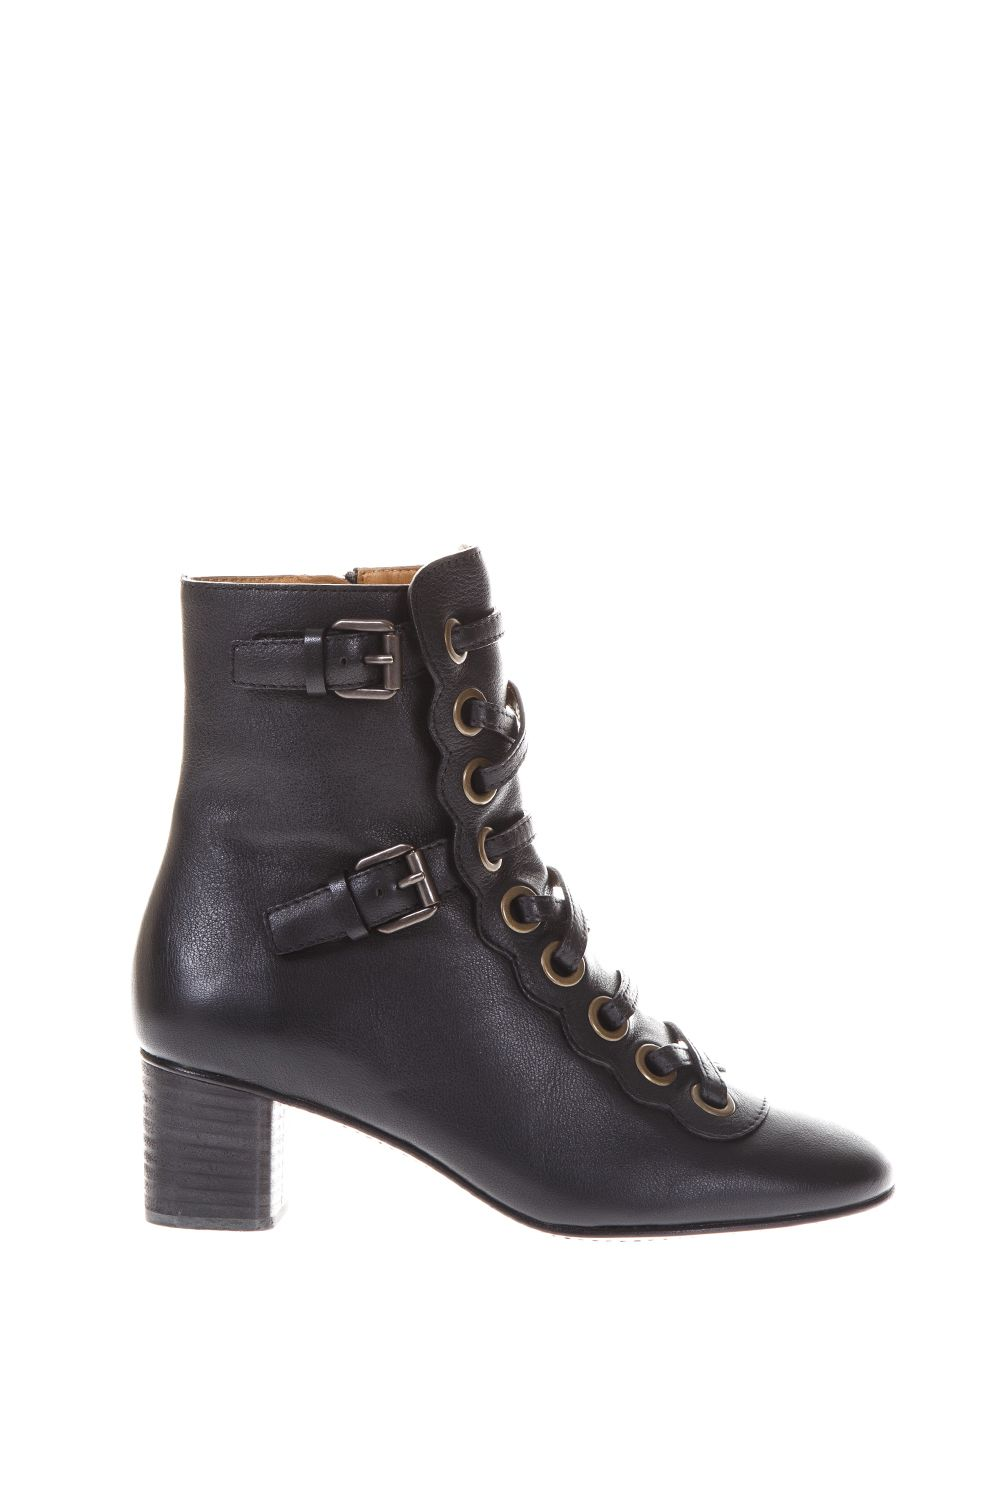 Chloé Orson Ankle Boots In Smooth Leather